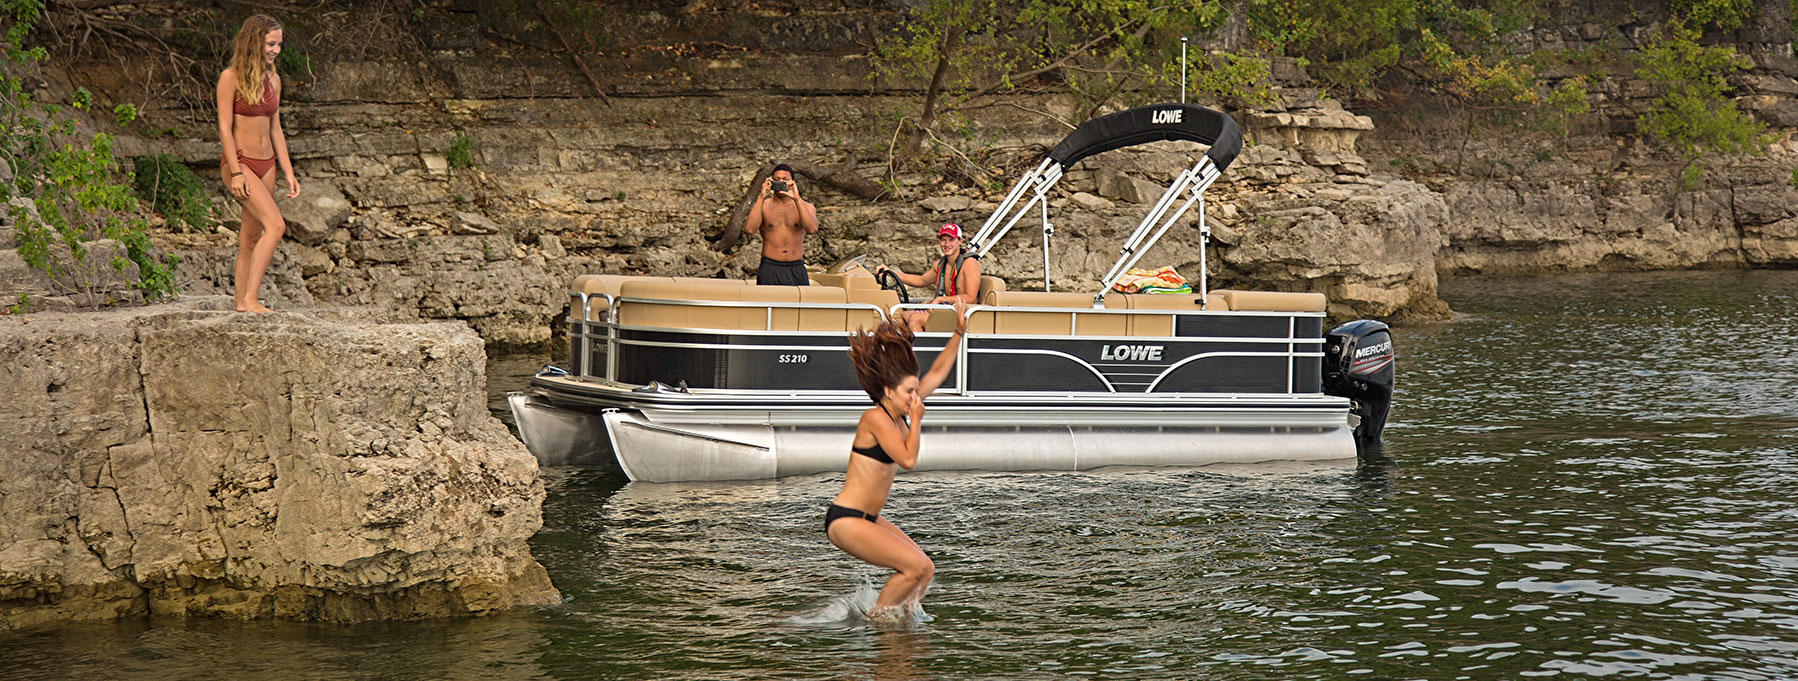 lowe sunchaser pontoon wiring diagram wiring library Boat Wiring Diagram for Dummies 2019 ss210 sport pontoon boat lowe pontoons pontoon boat wiring diagram